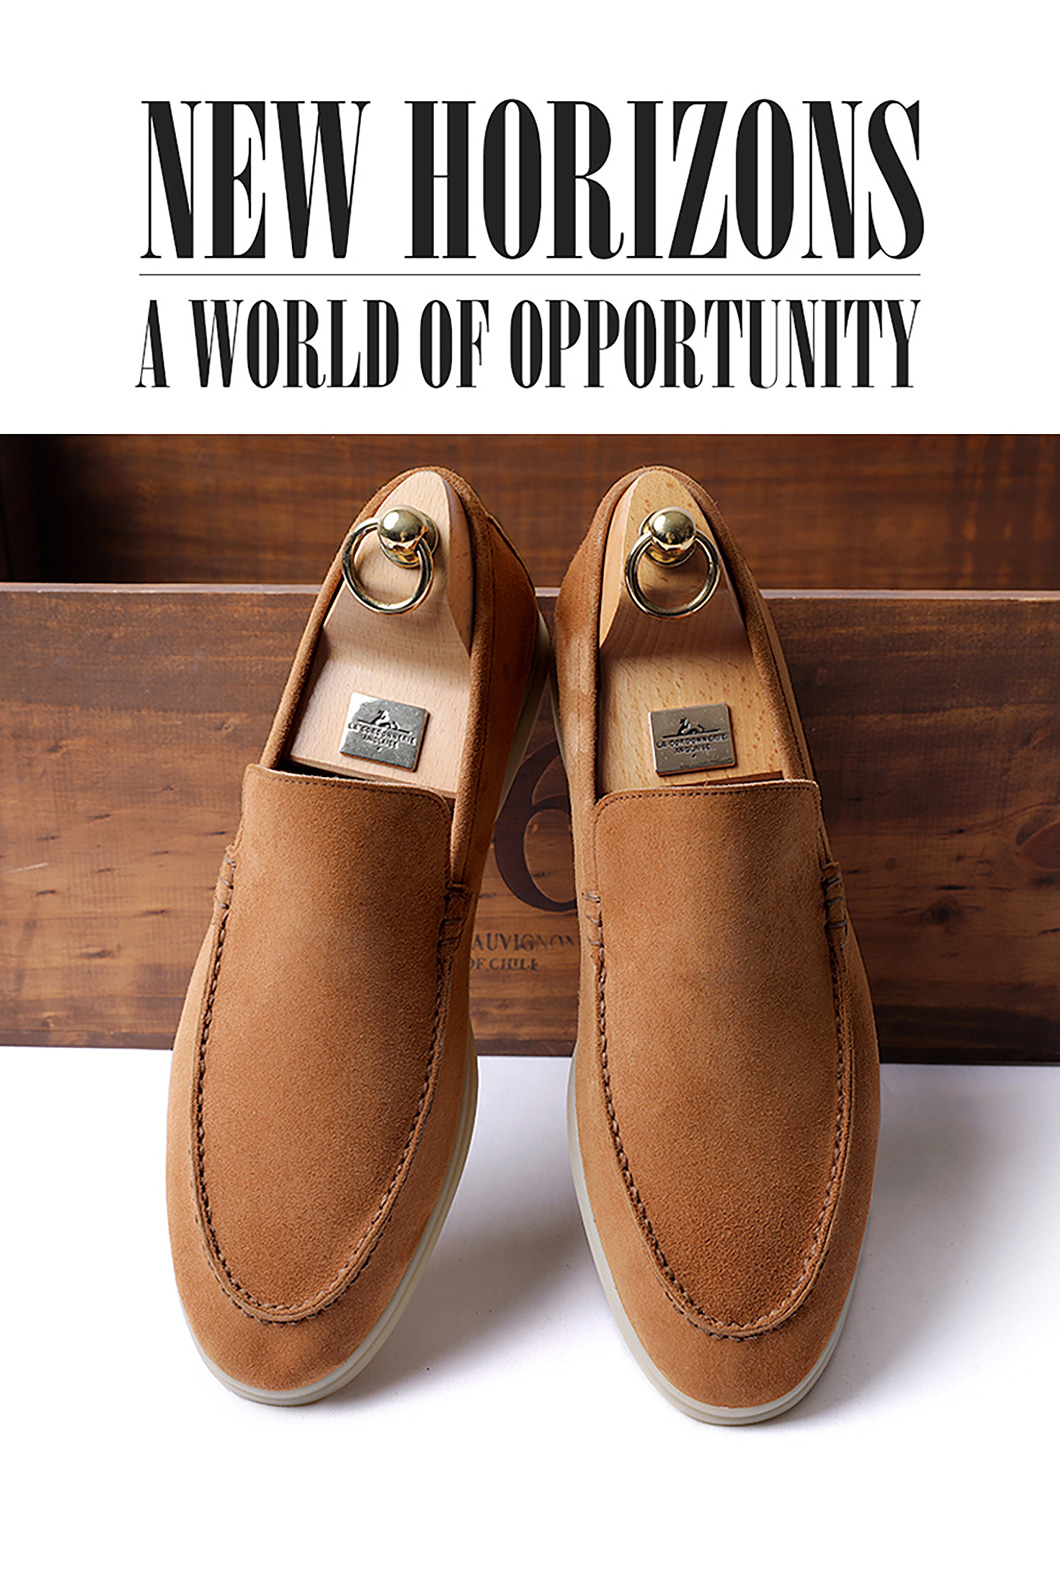 LOWER SUEDE LOAFER-CAMELITALY Leather 250 size 당일 발송!